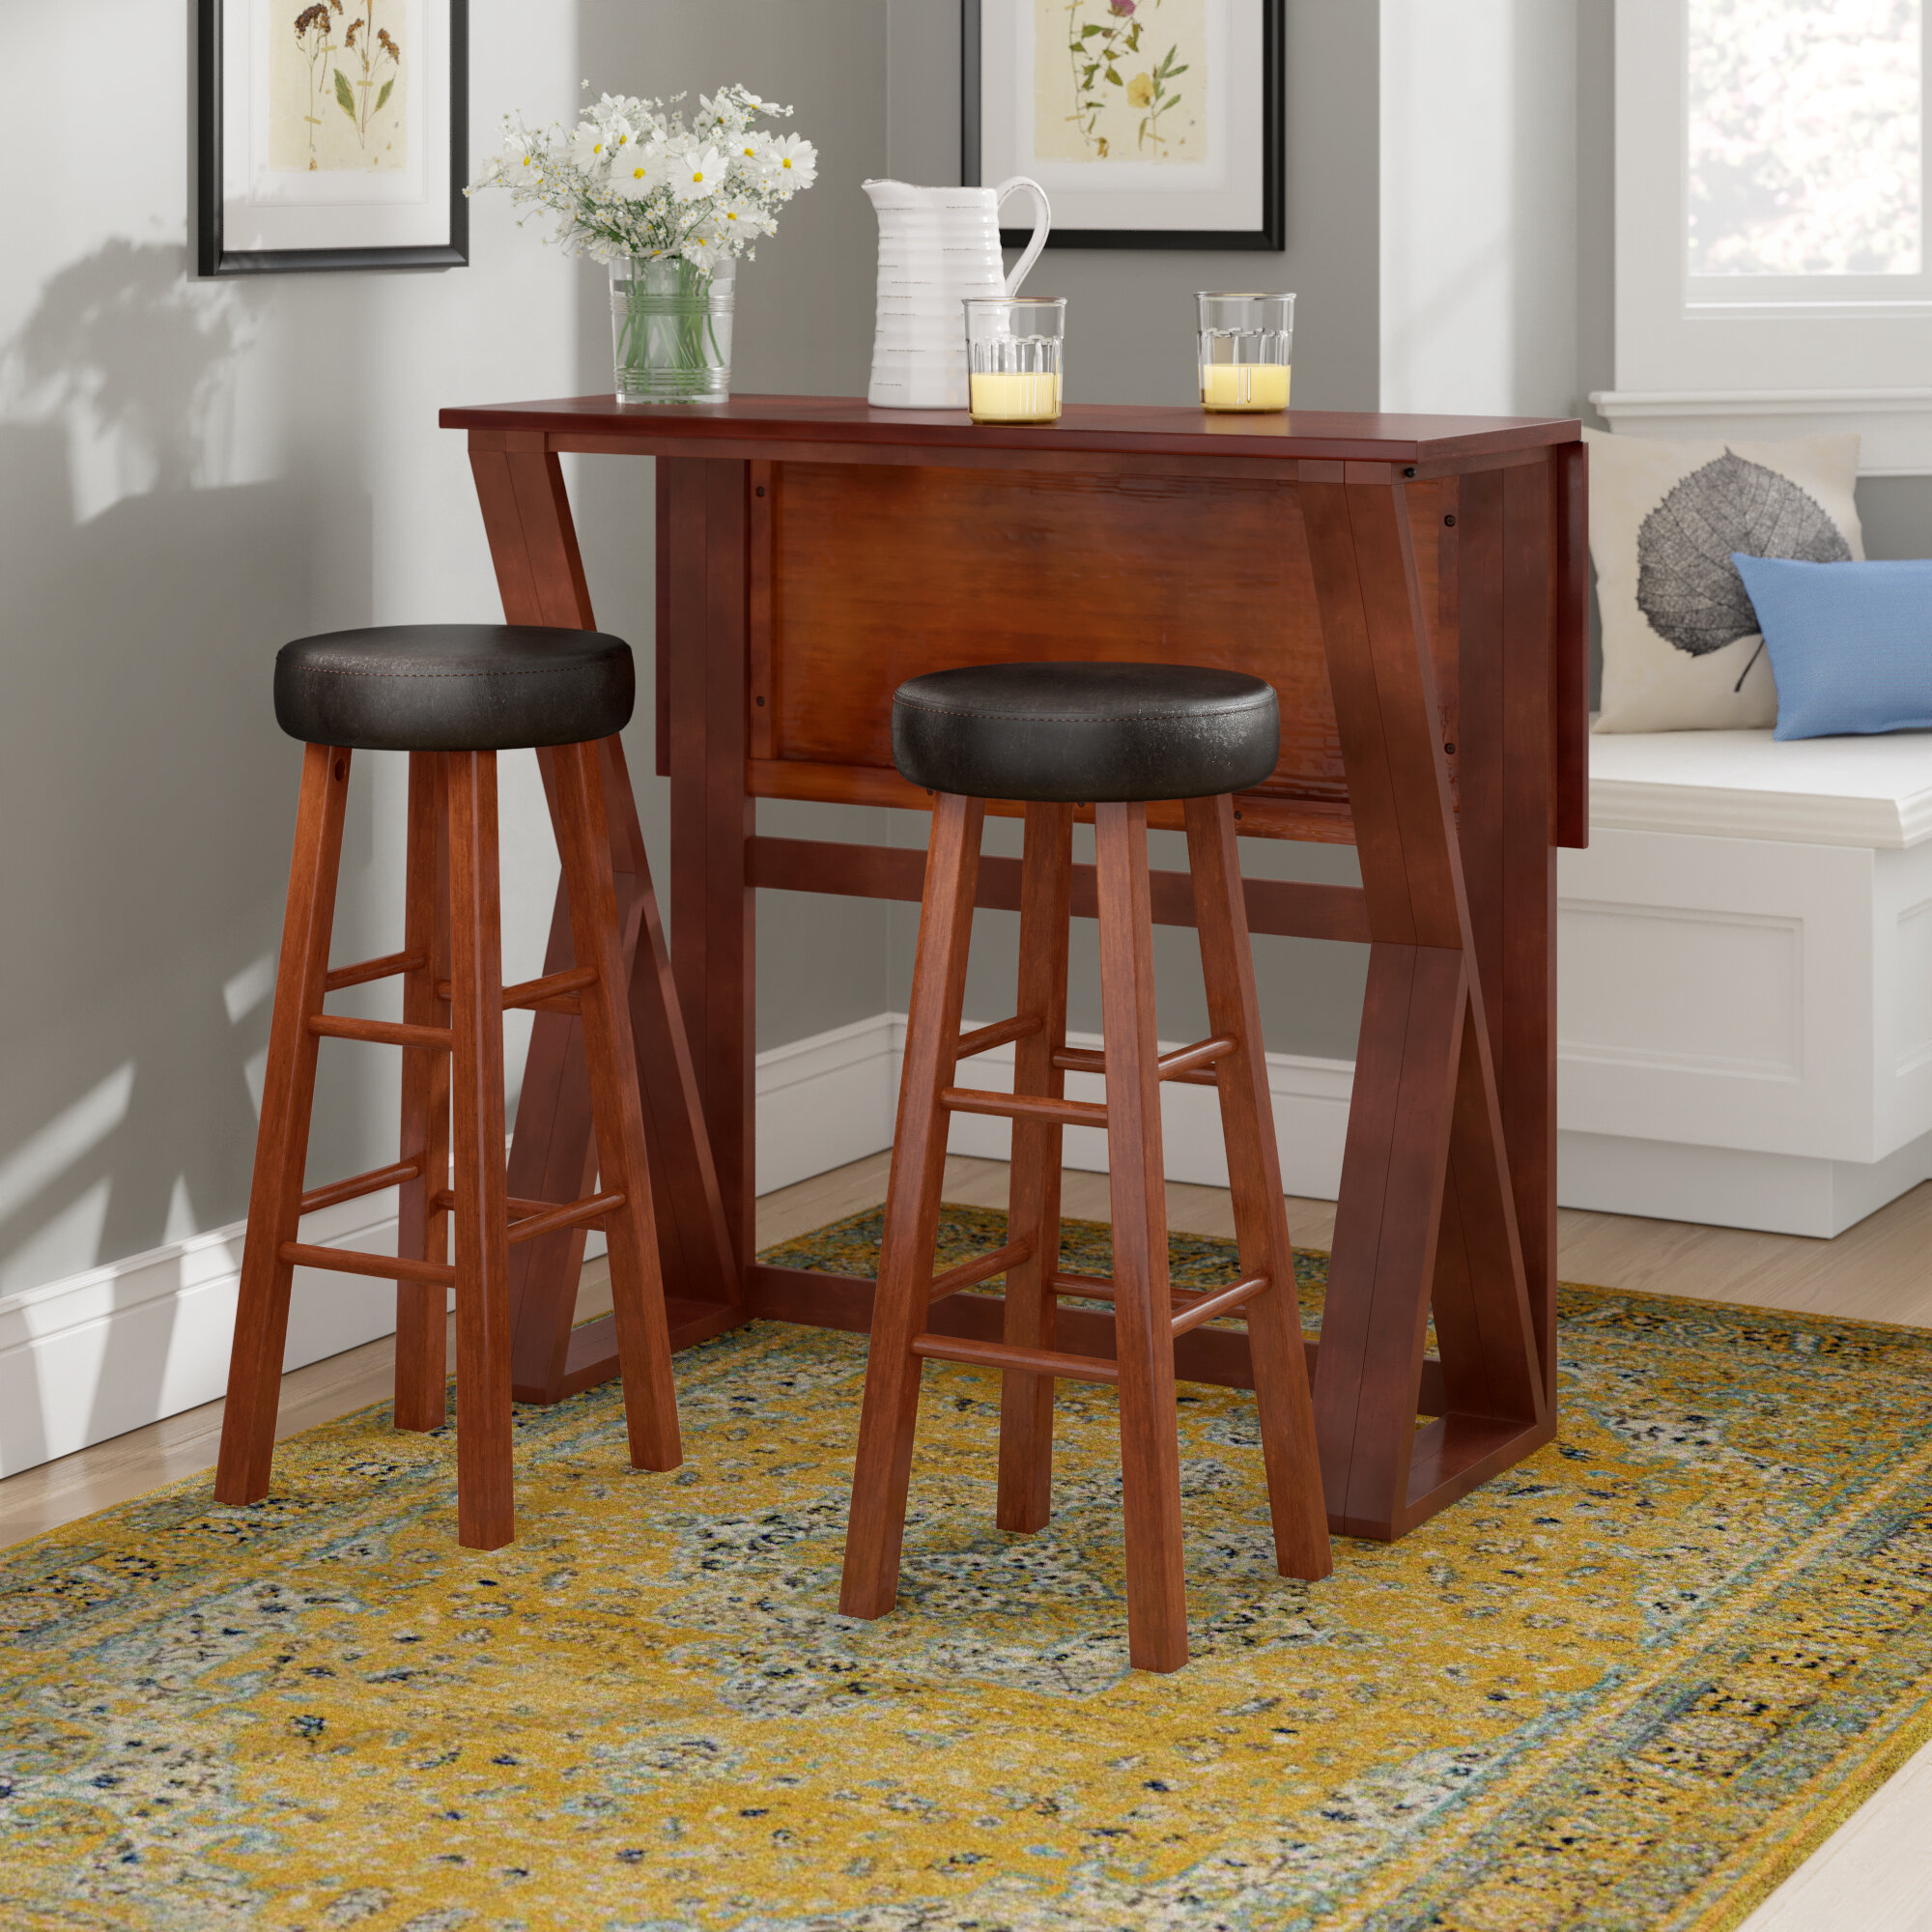 Wayfair Intended For Most Recently Released Moorehead 3 Piece Counter Height Dining Sets (View 12 of 20)